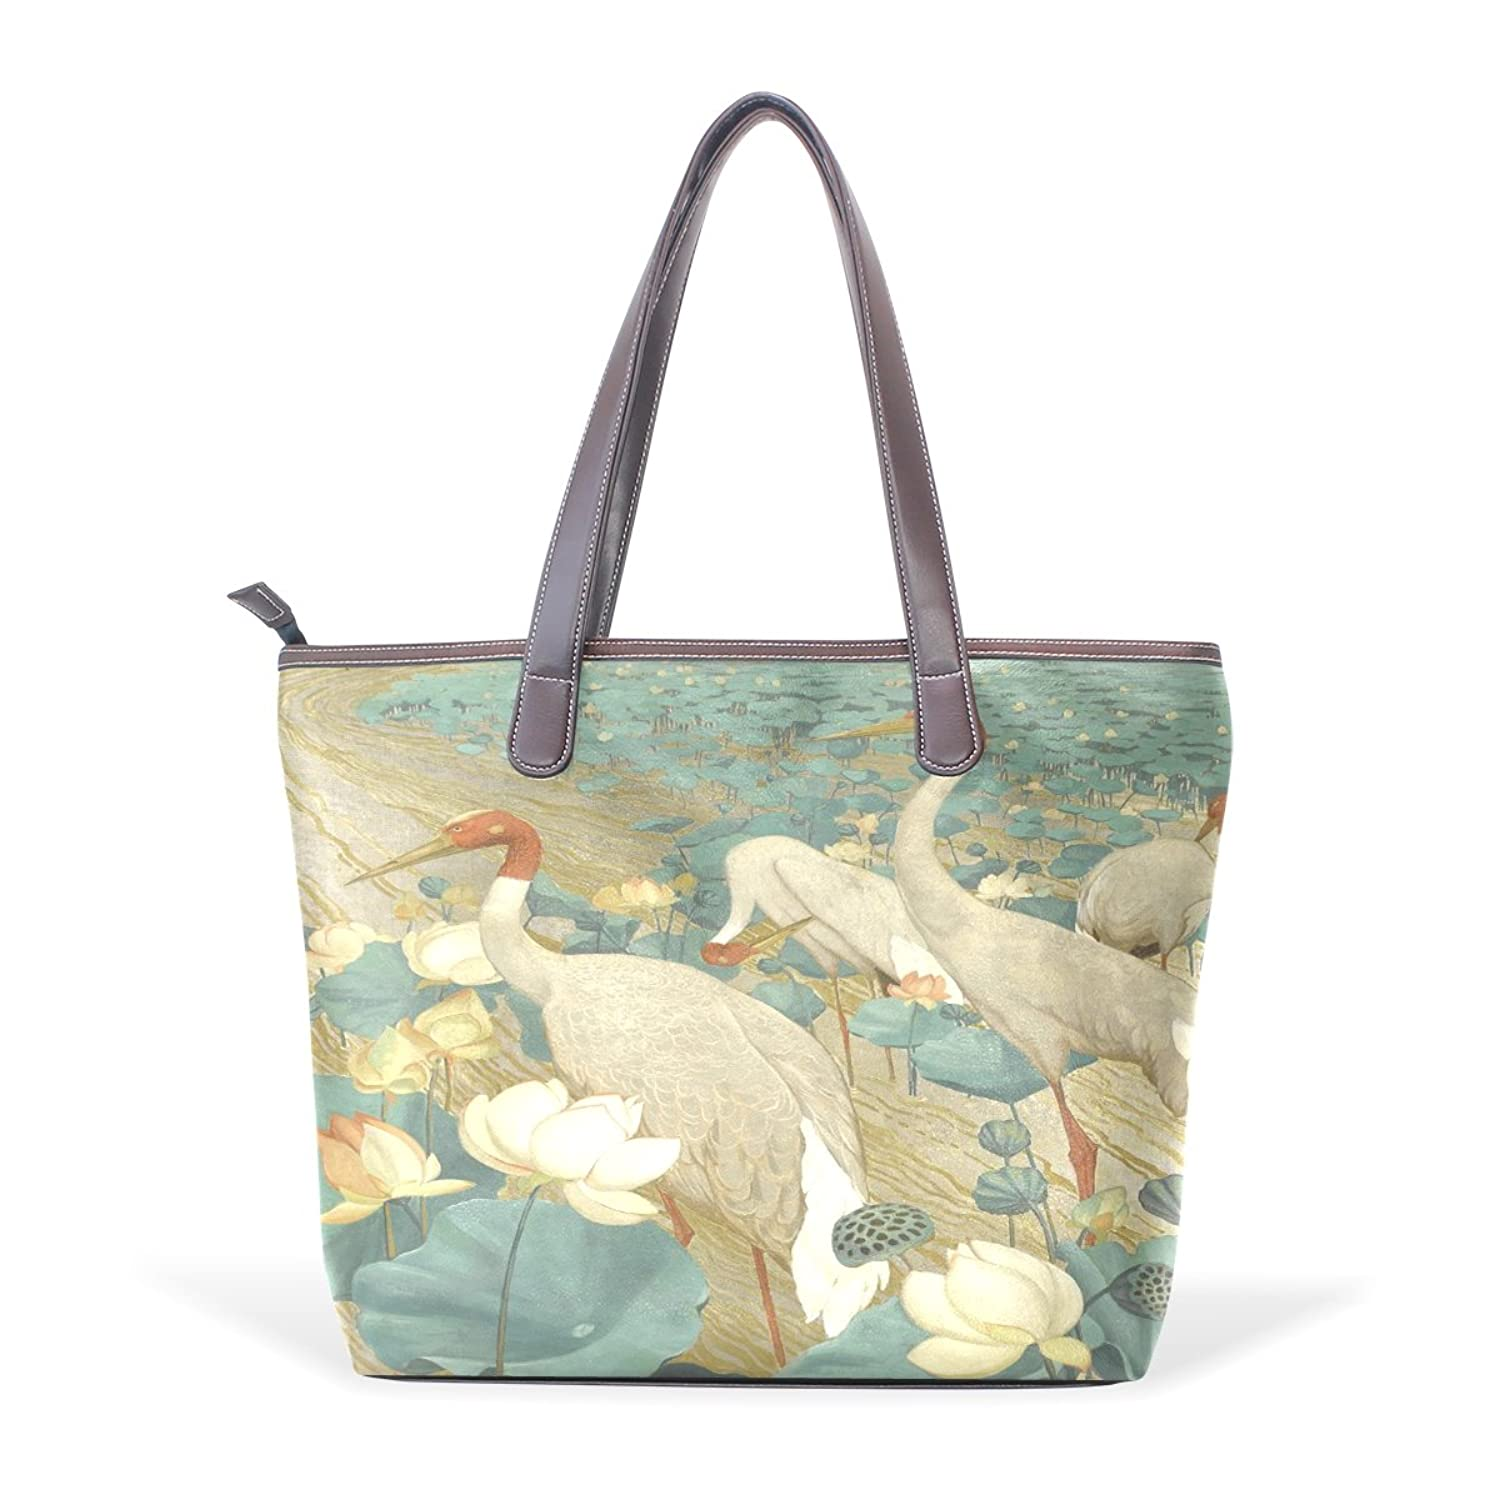 Womens Leather Tote Bag,Art Elegant White Bird,Large Handbag